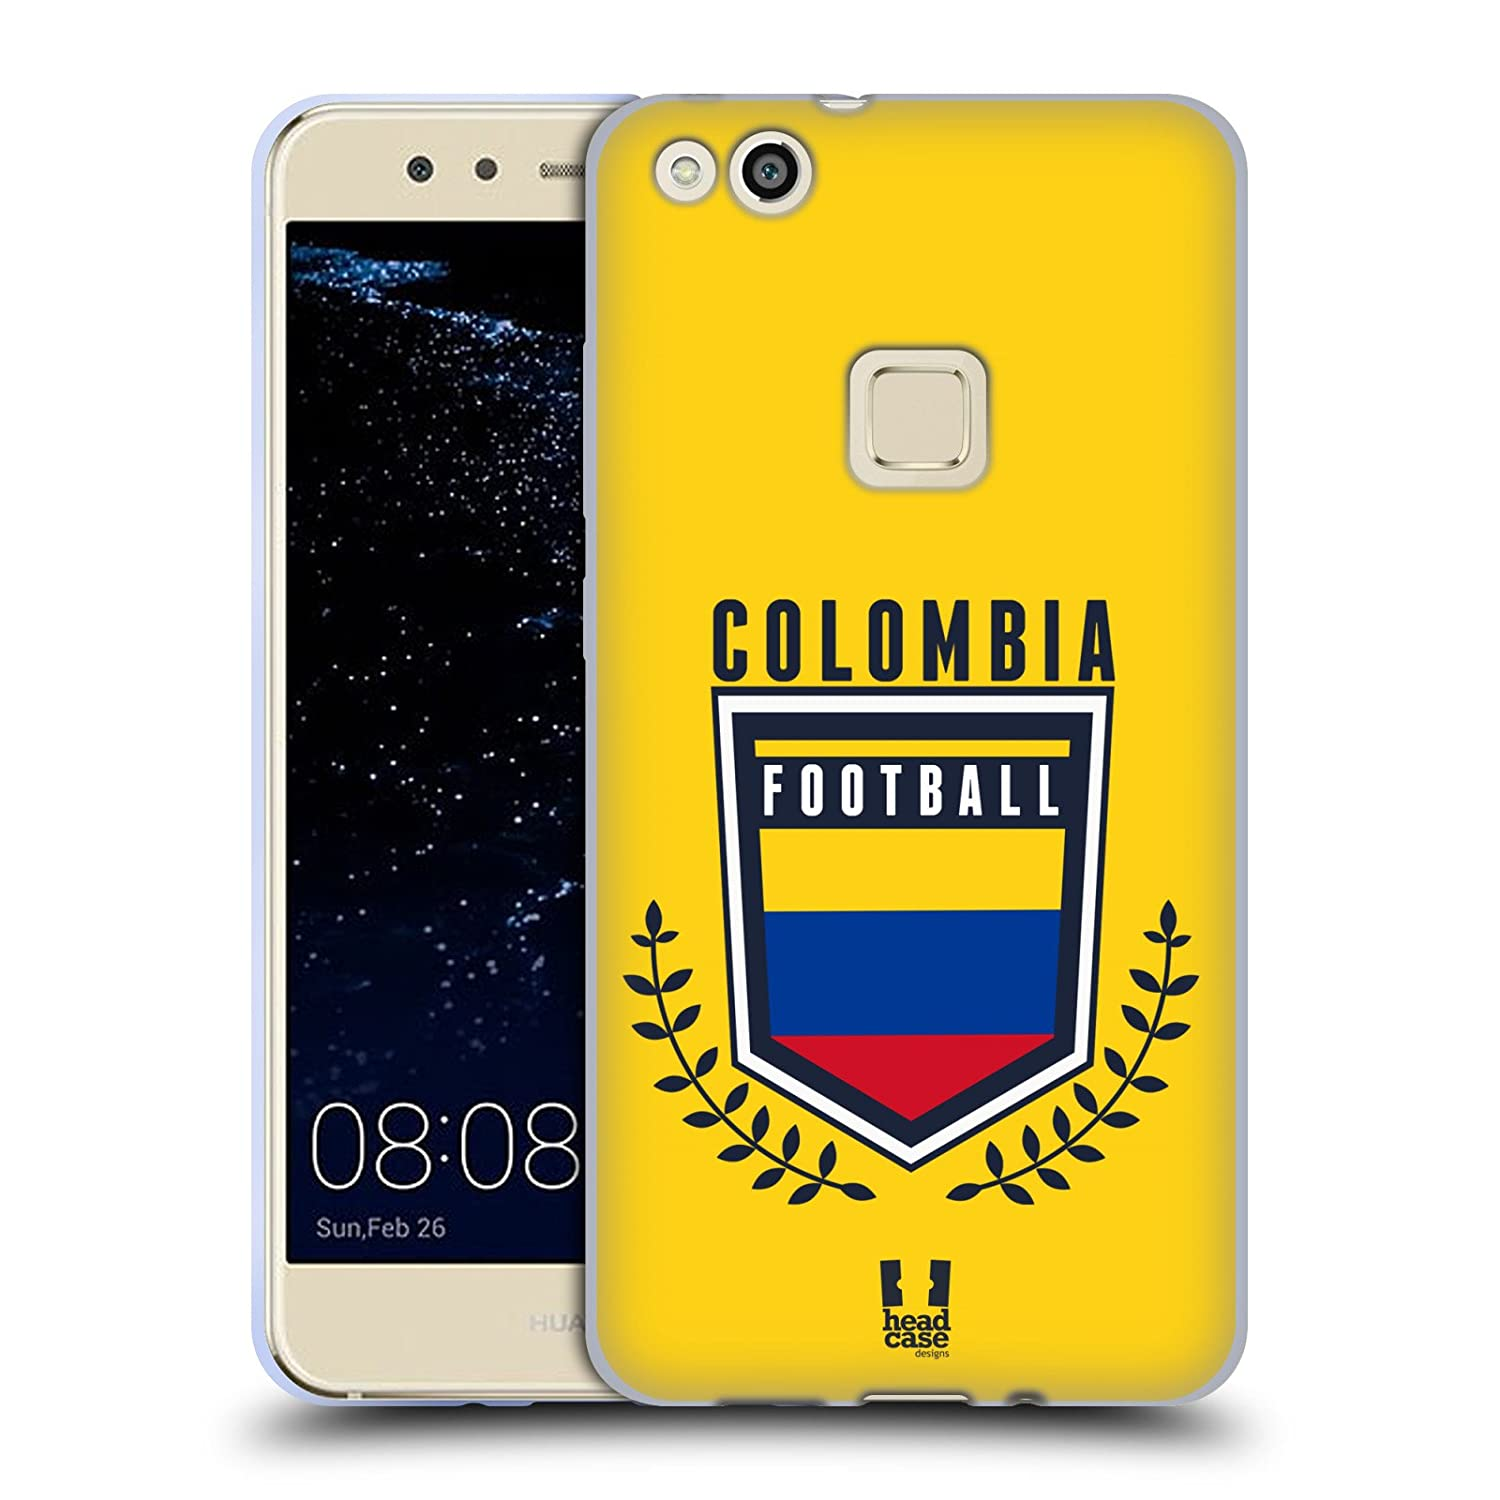 Head Case Designs Colombia Football Crest Soft Gel Case for Huawei P10 Lite HTPCR-P10LITE-FCRE-COL